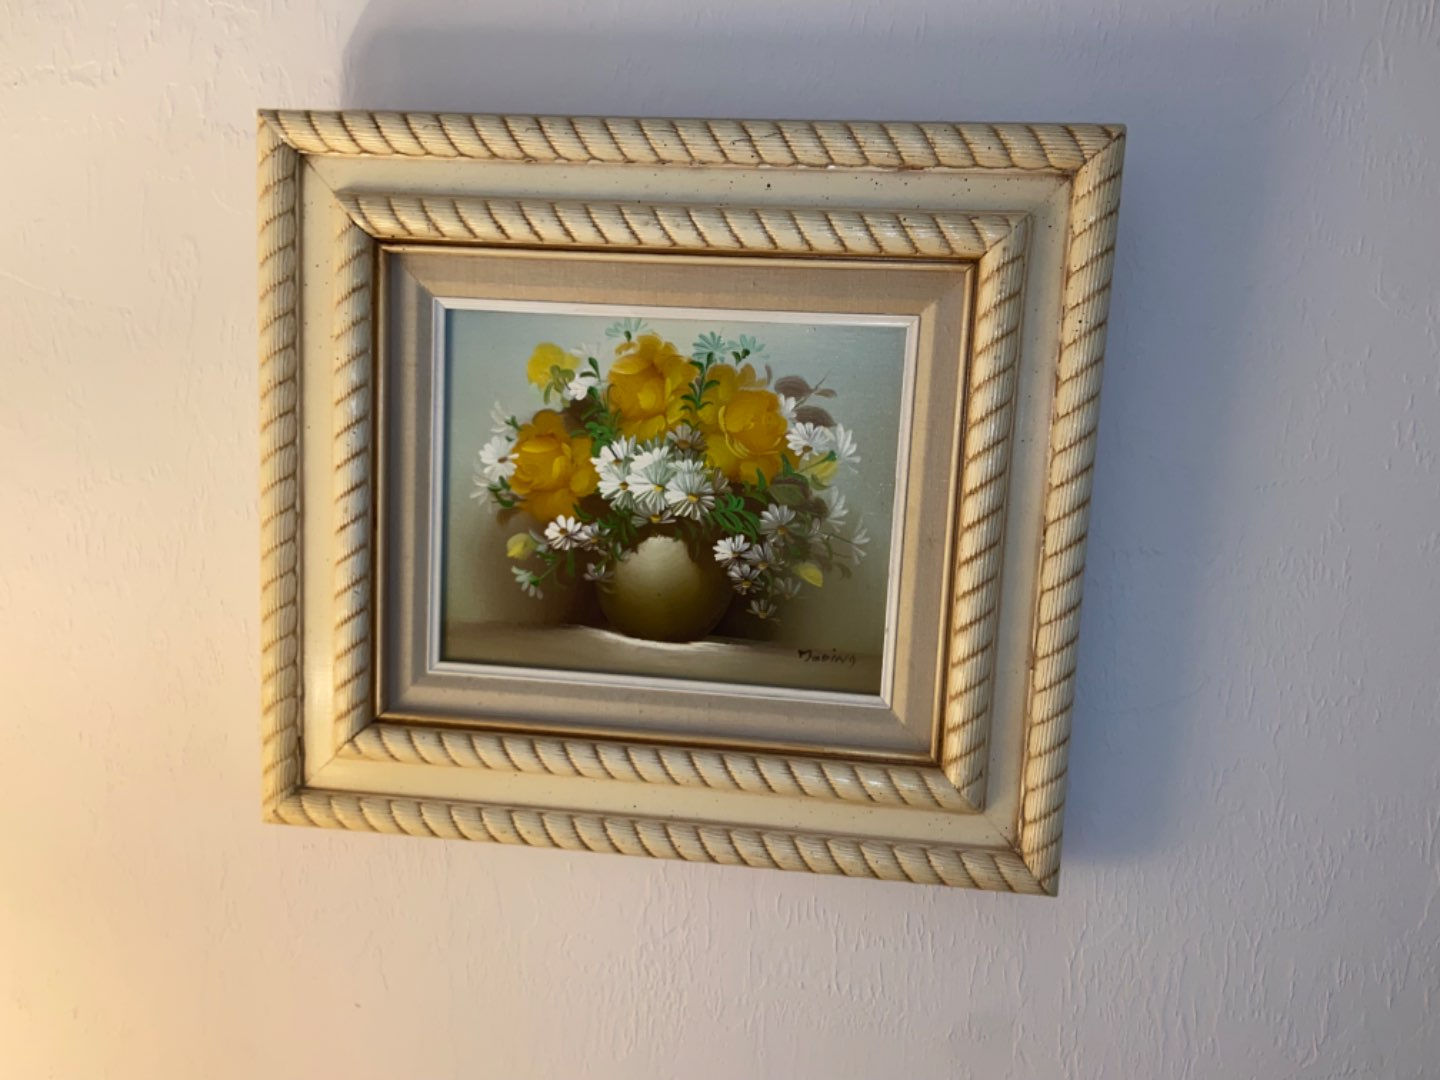 Lot # 208 Signed Floral Painting